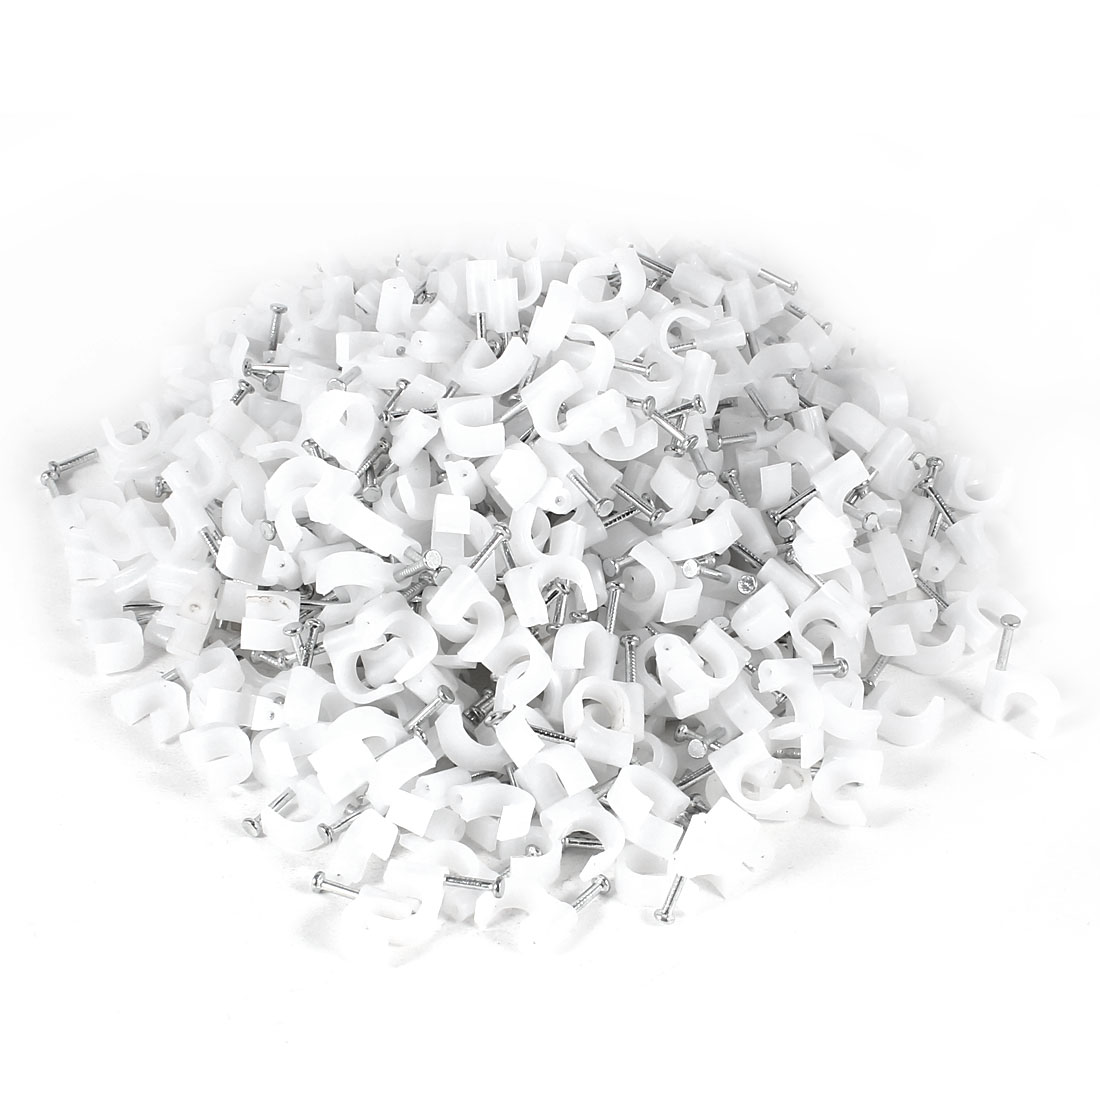 1000 Pcs 8mm Diameter Coax Cable Inserting Circle Nail Clips White